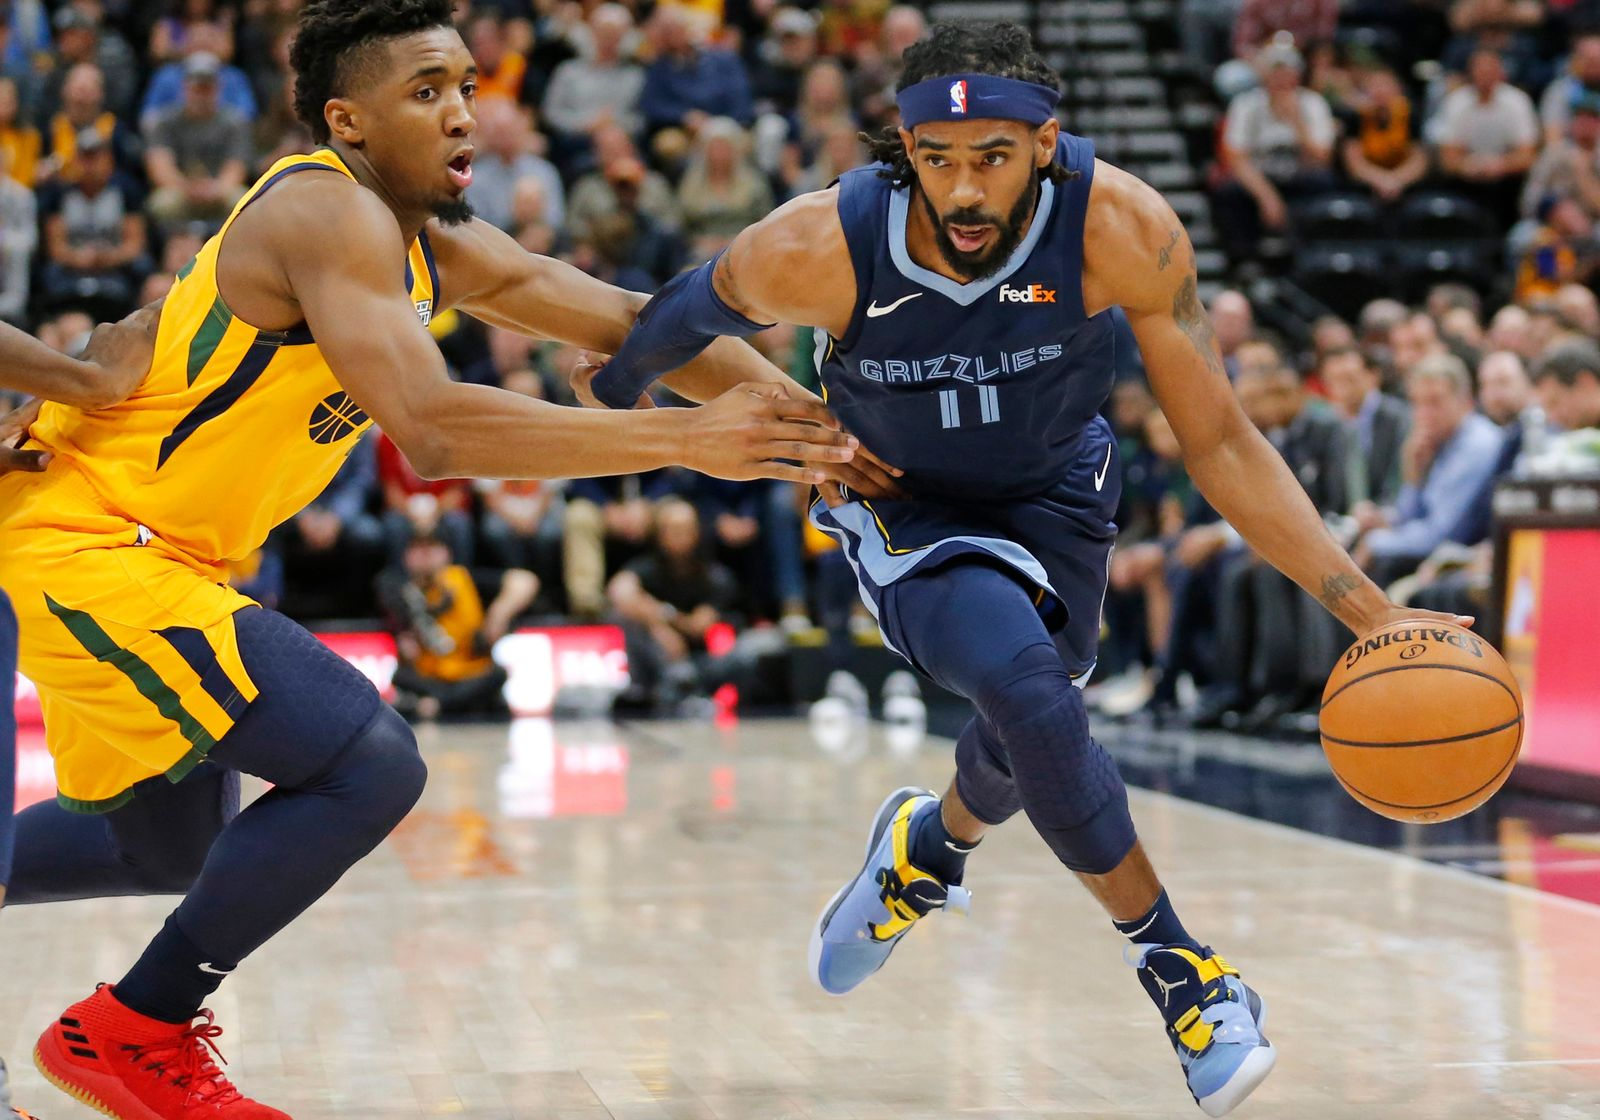 Memphis Grizzlies guard Mike Conley (11) drives around Utah Jazz guard Donovan Mitchell, left, in the first half of an NBA basketball game Monday, Oct. 22, 2018, in Salt Lake City. (AP Photo/Rick Bowmer)